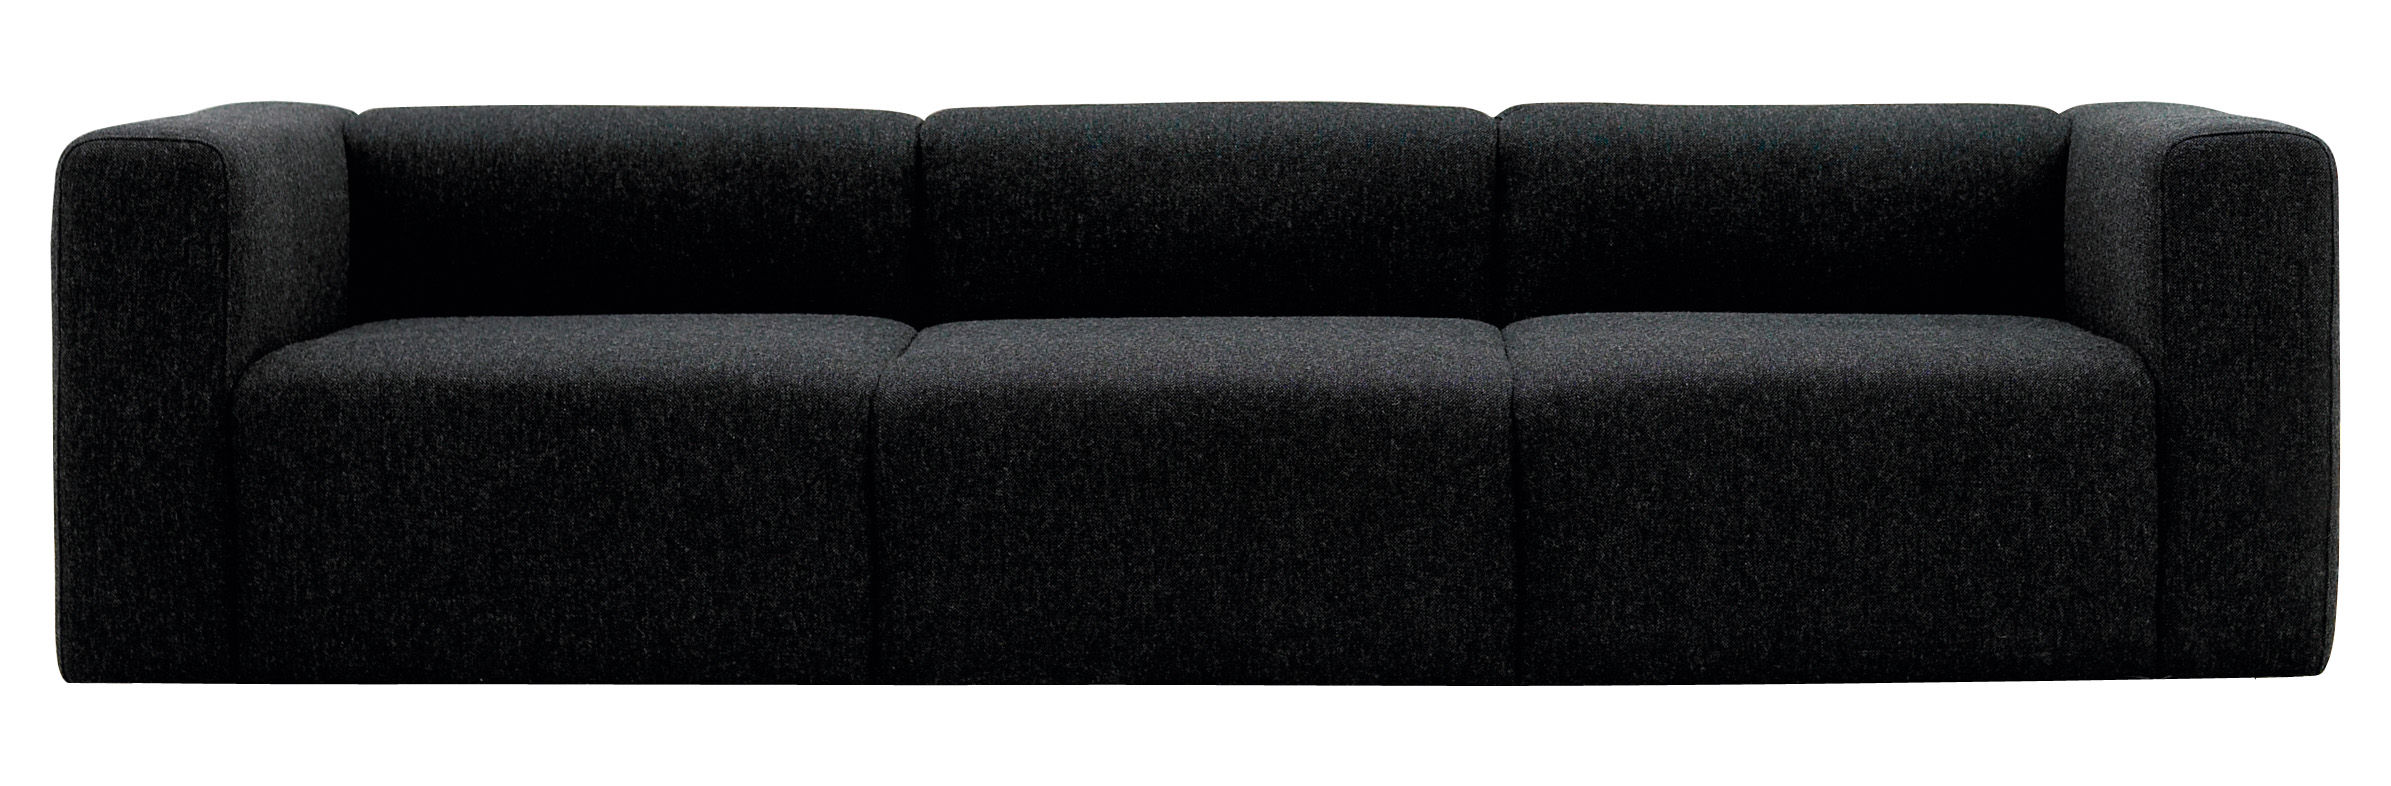 Mags straight sofa 3 seats l 266 cm hallingdal for Sofa 70 cm profundidad